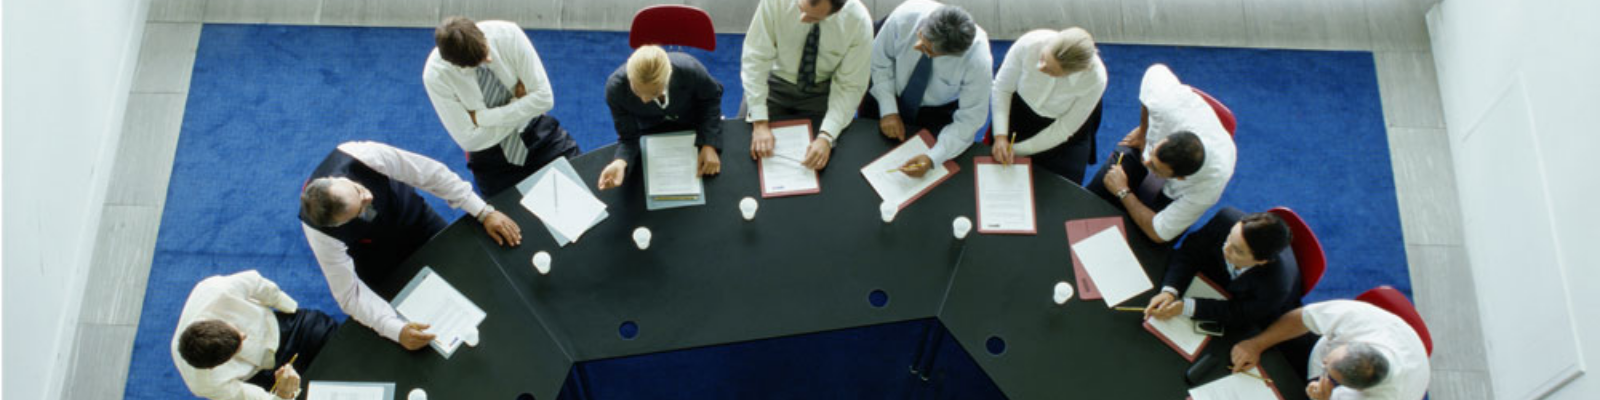 Four common biases in boardroom culture